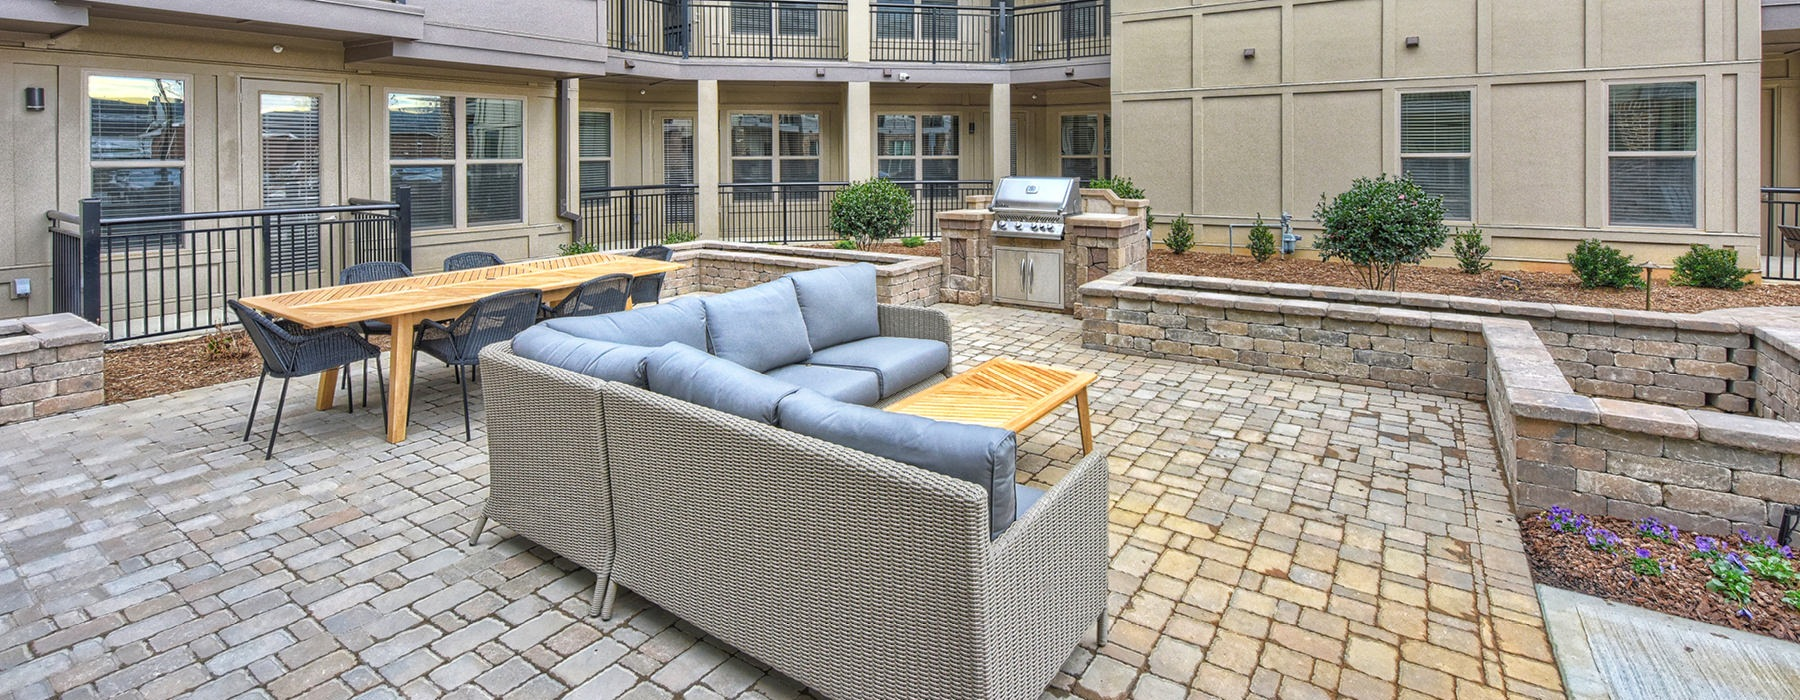 Outdoor couch and seating with stone floor